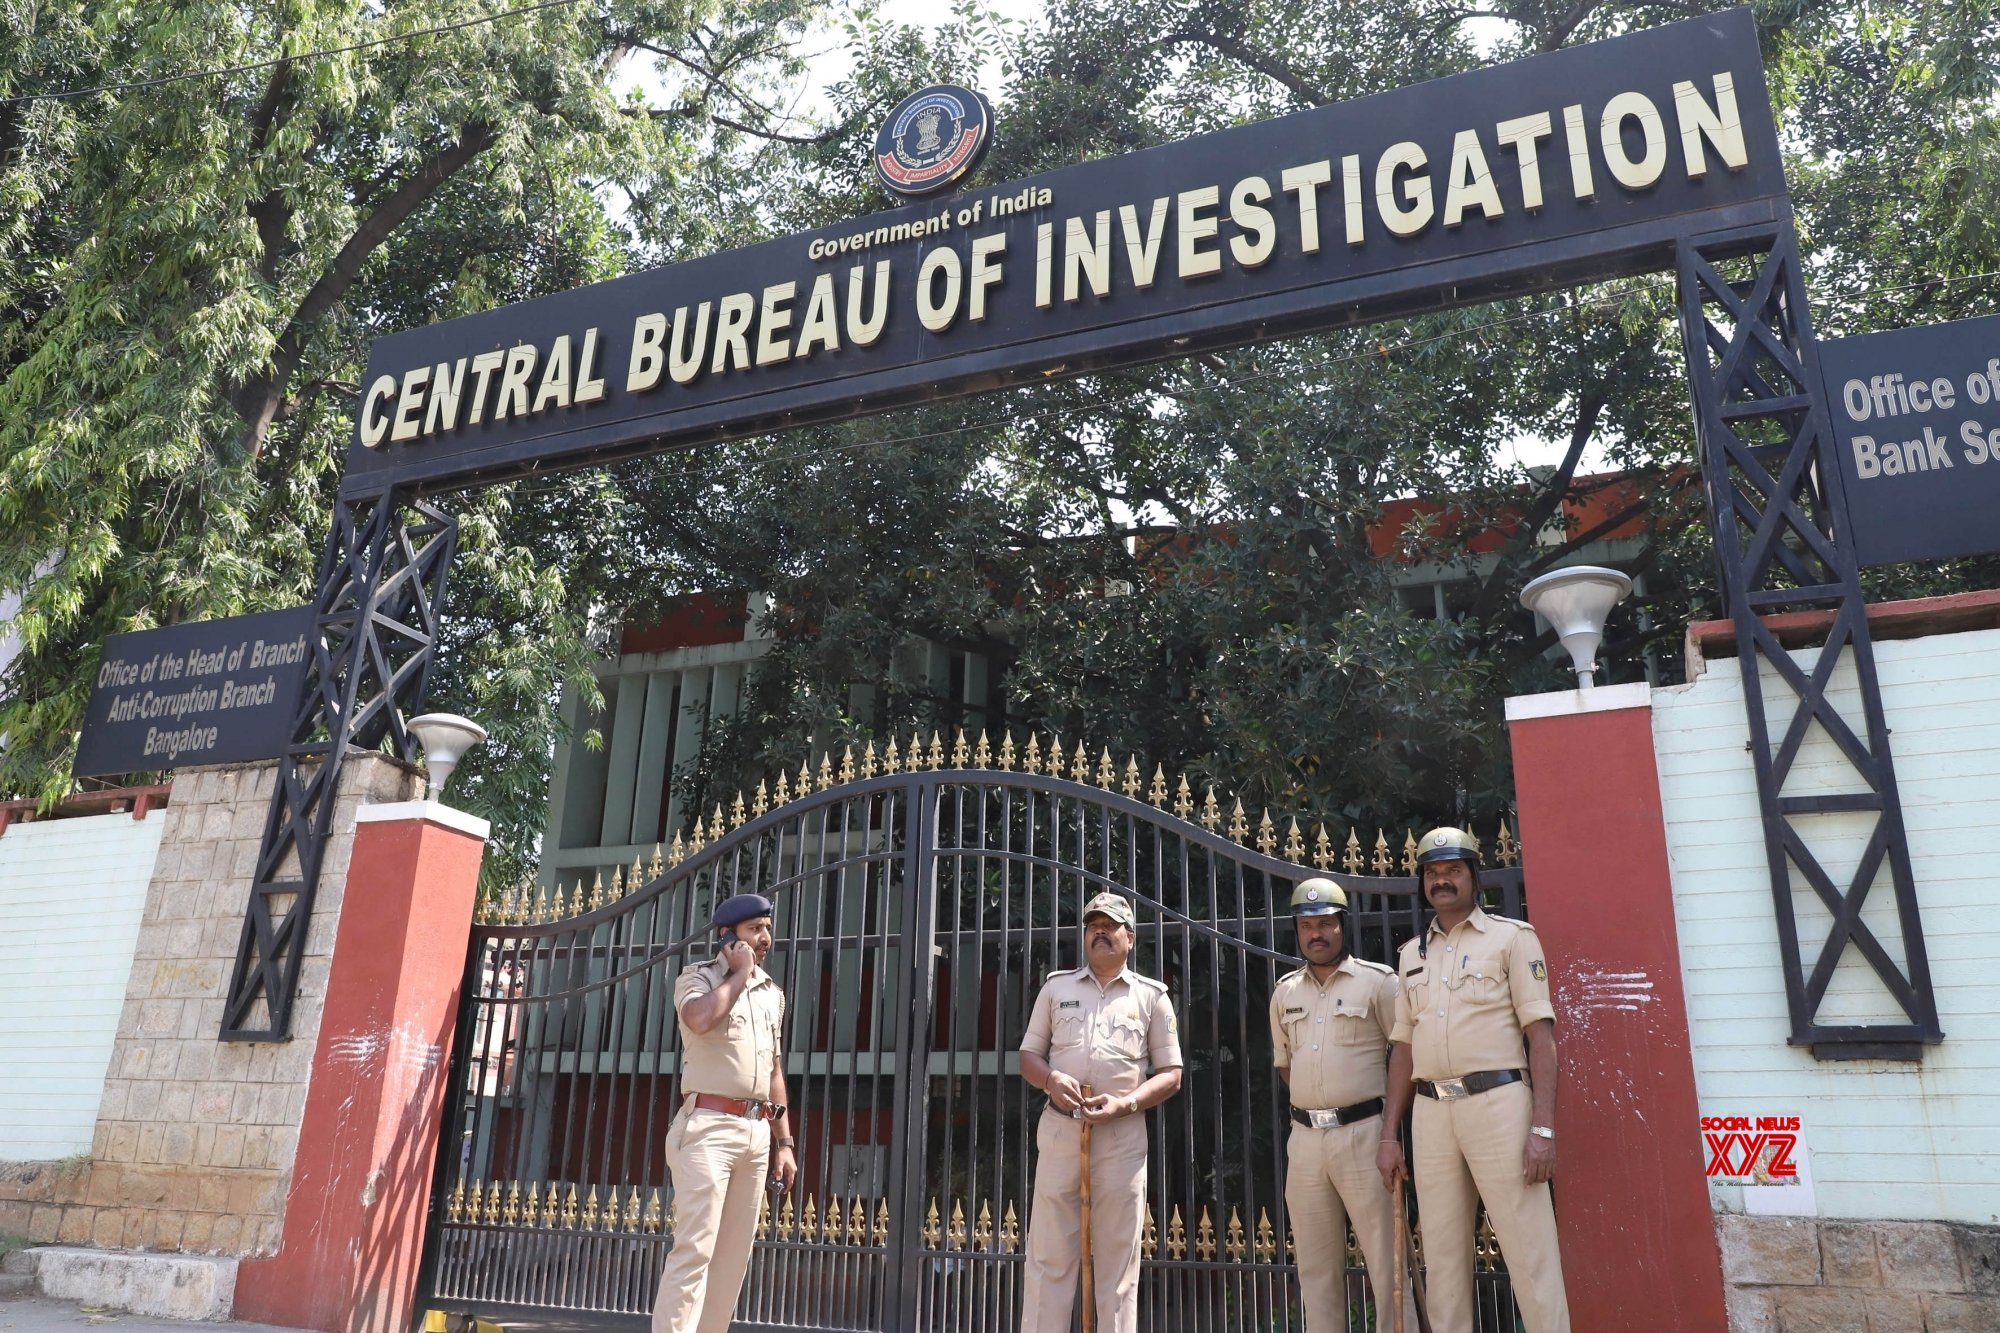 CBI begins preliminary probe into Rs 9,000 cr J&K project